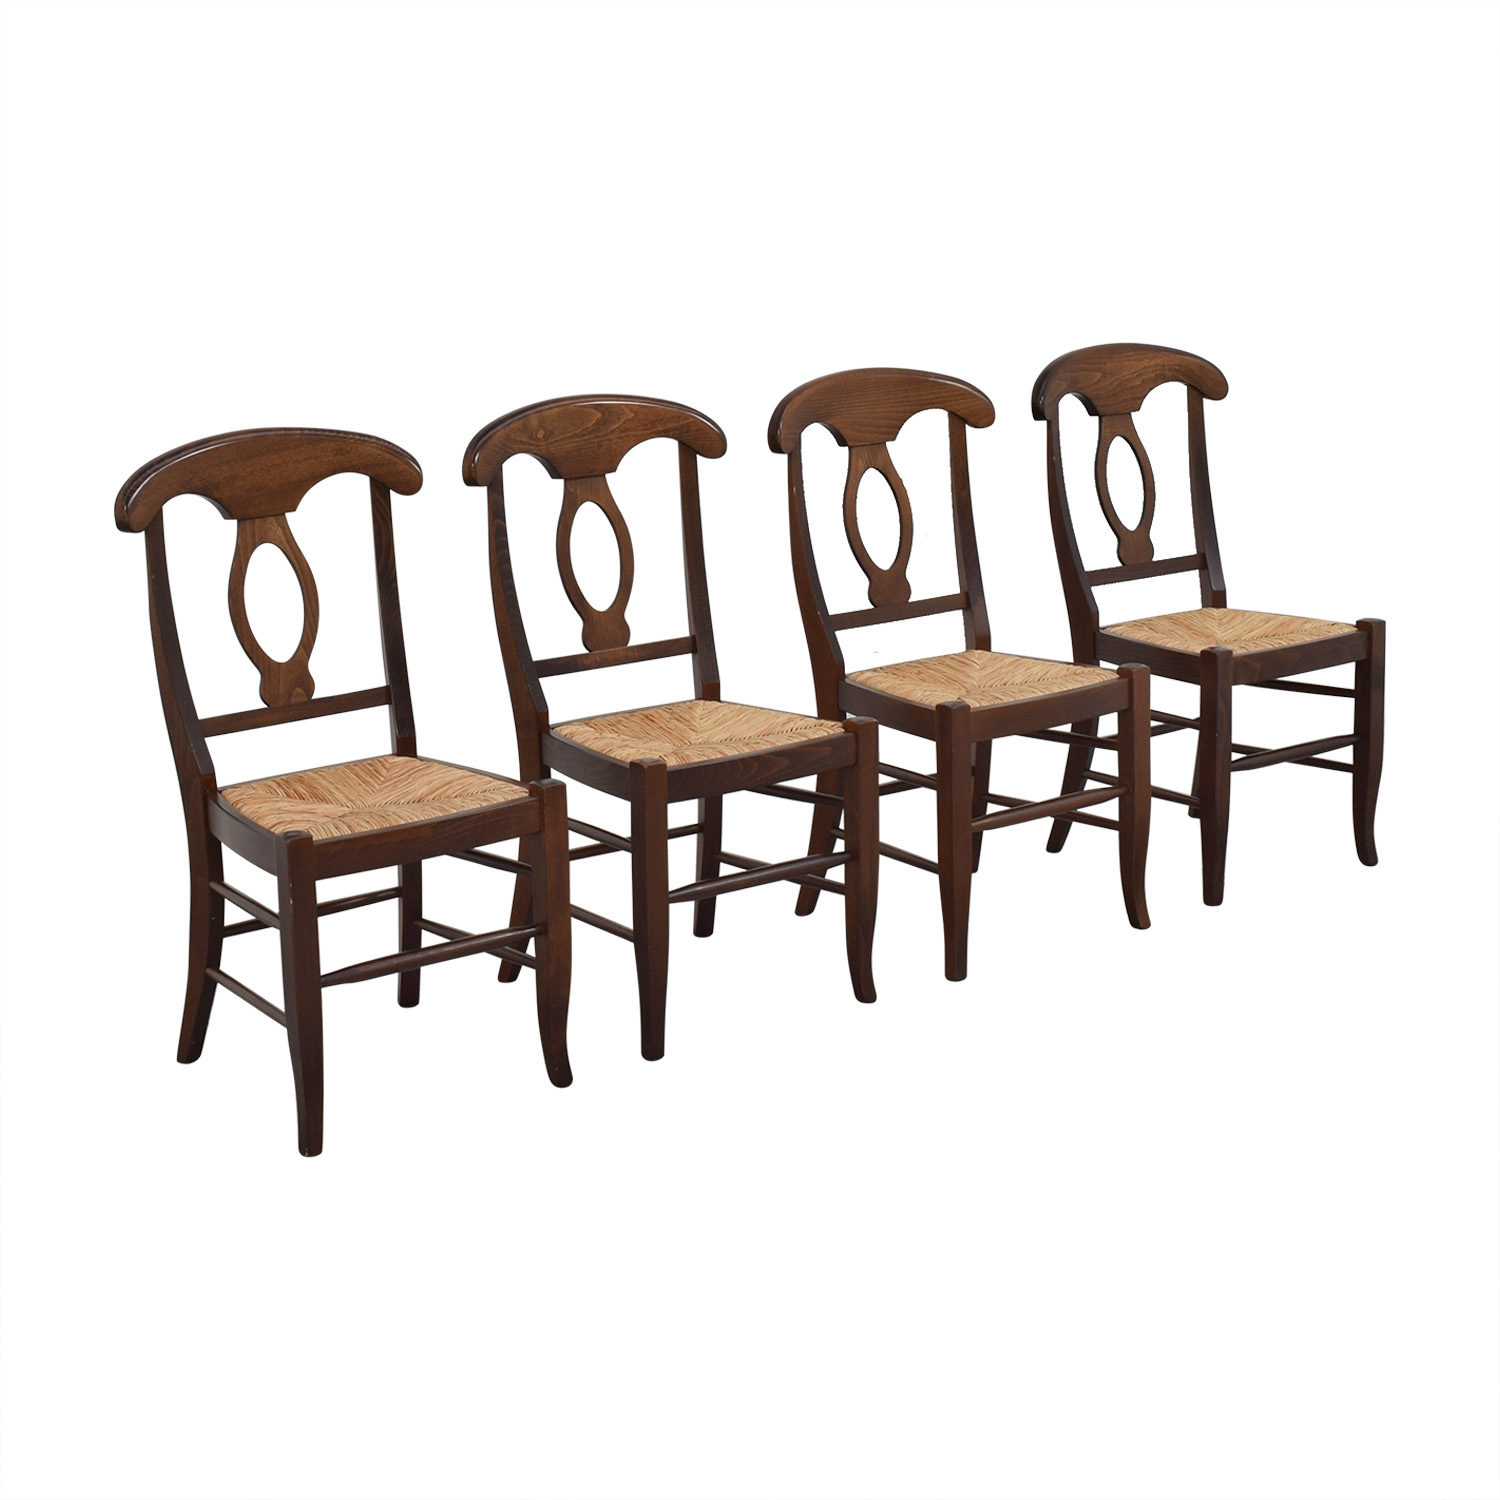 78 Off Pottery Barn Pottery Barn Napoleon Dining Chairs